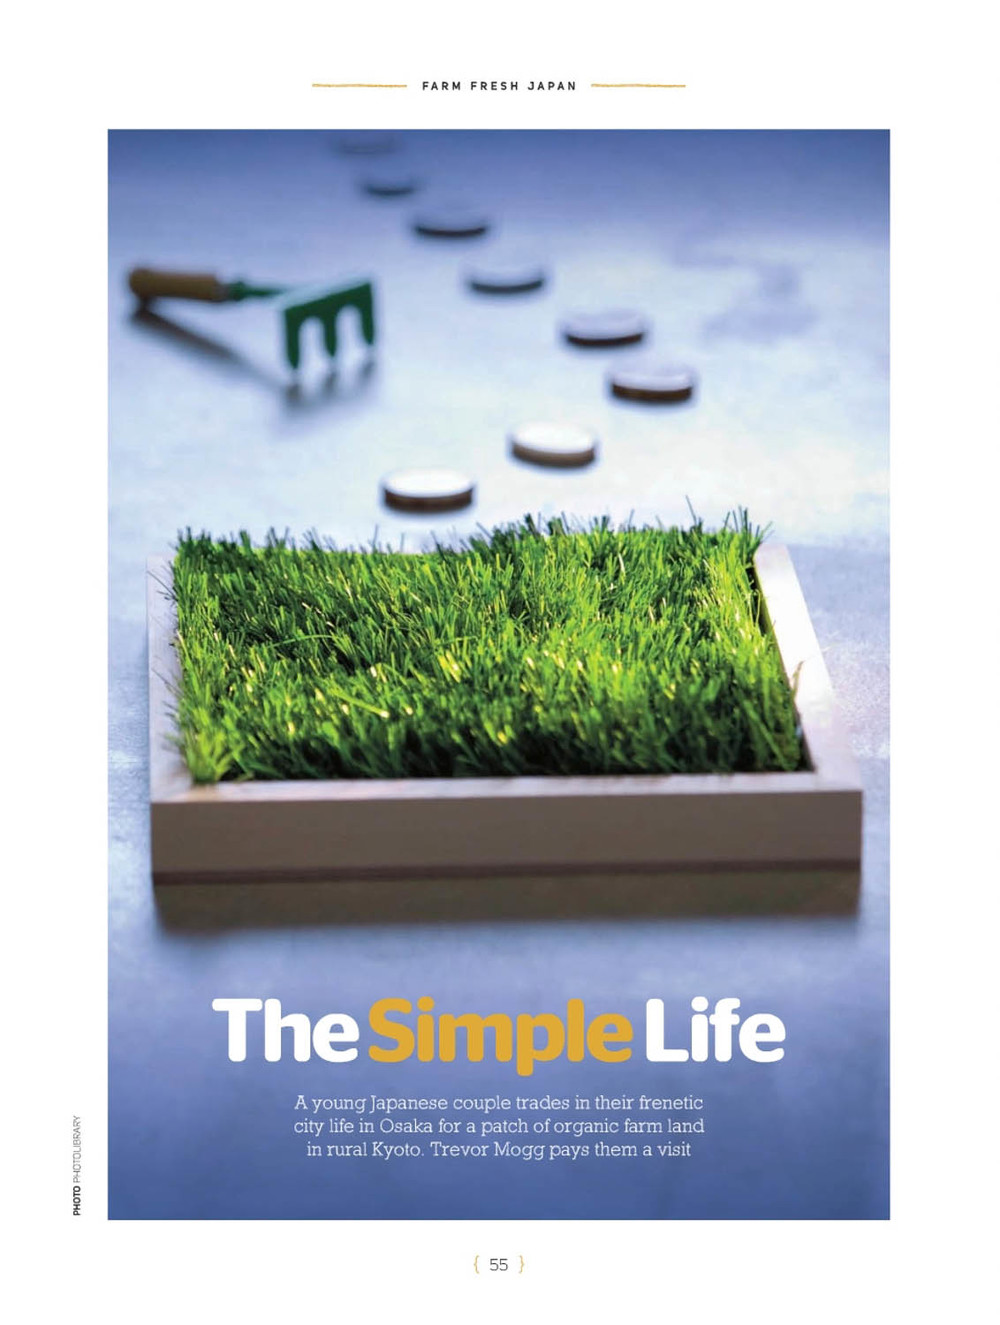 The Simple Life - 1 of 3